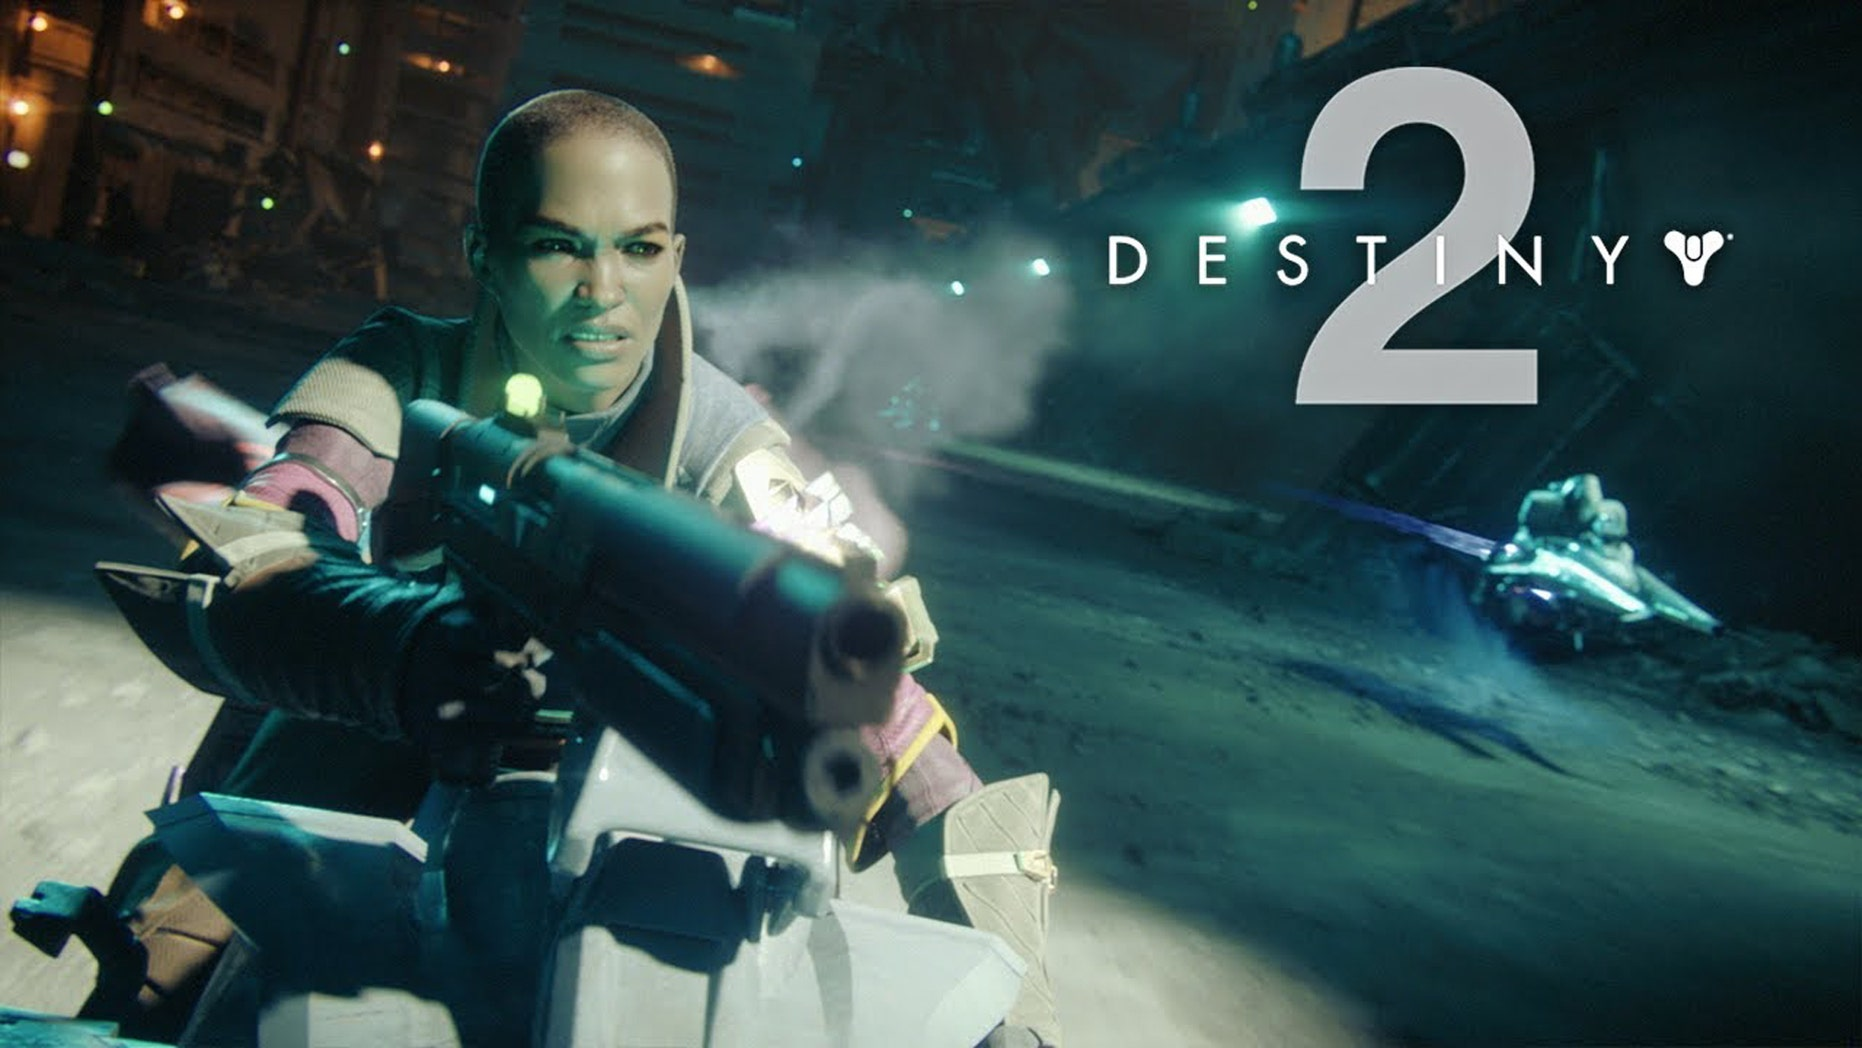 Destiny 2 trailer screenshot. (Credit: YouTube)